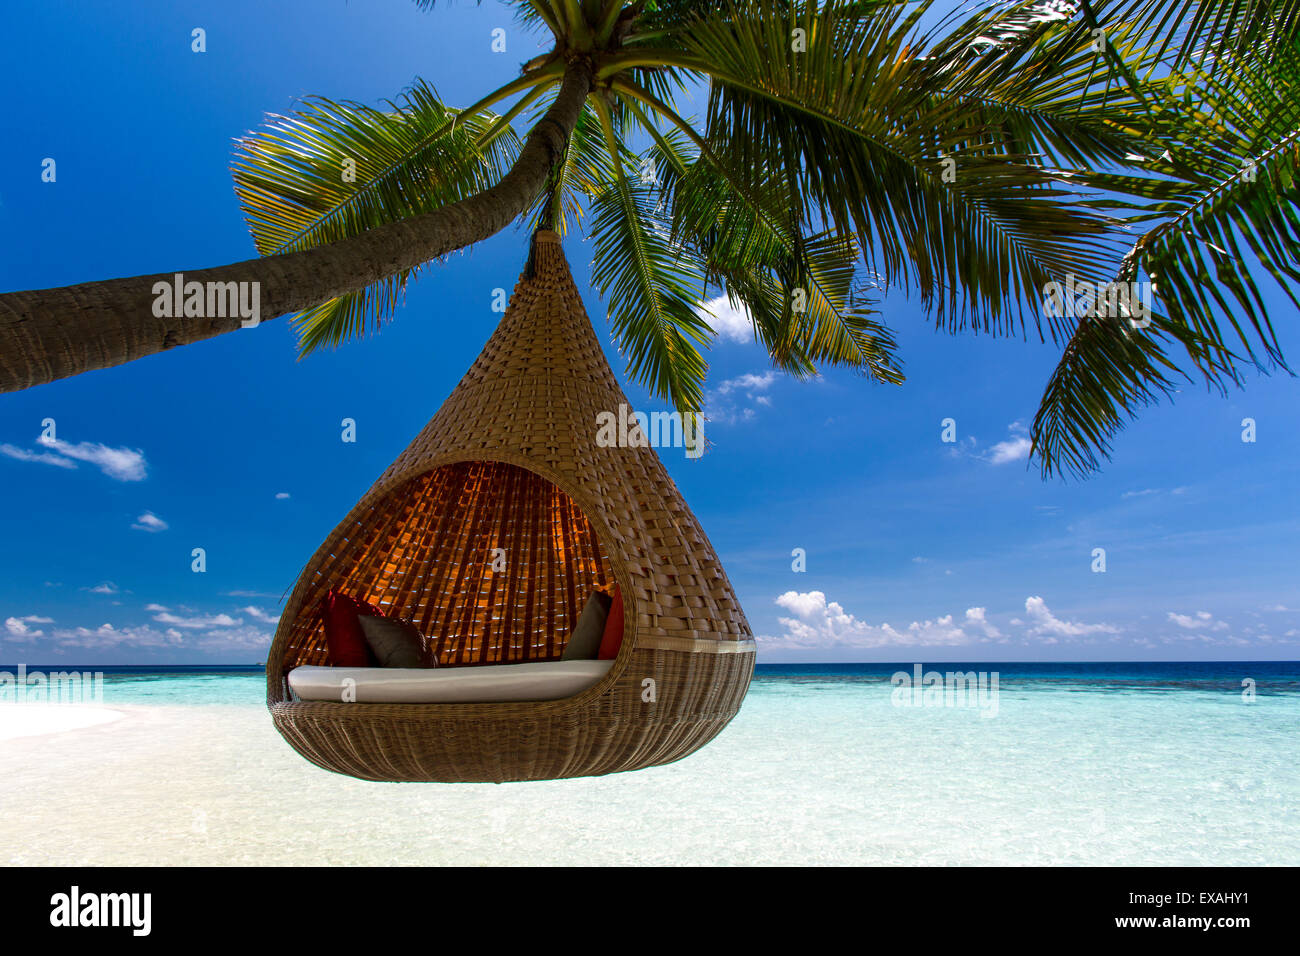 Sofa hanging on a tree on the beach, Maldives, Indian Ocean, Asia Stock Photo